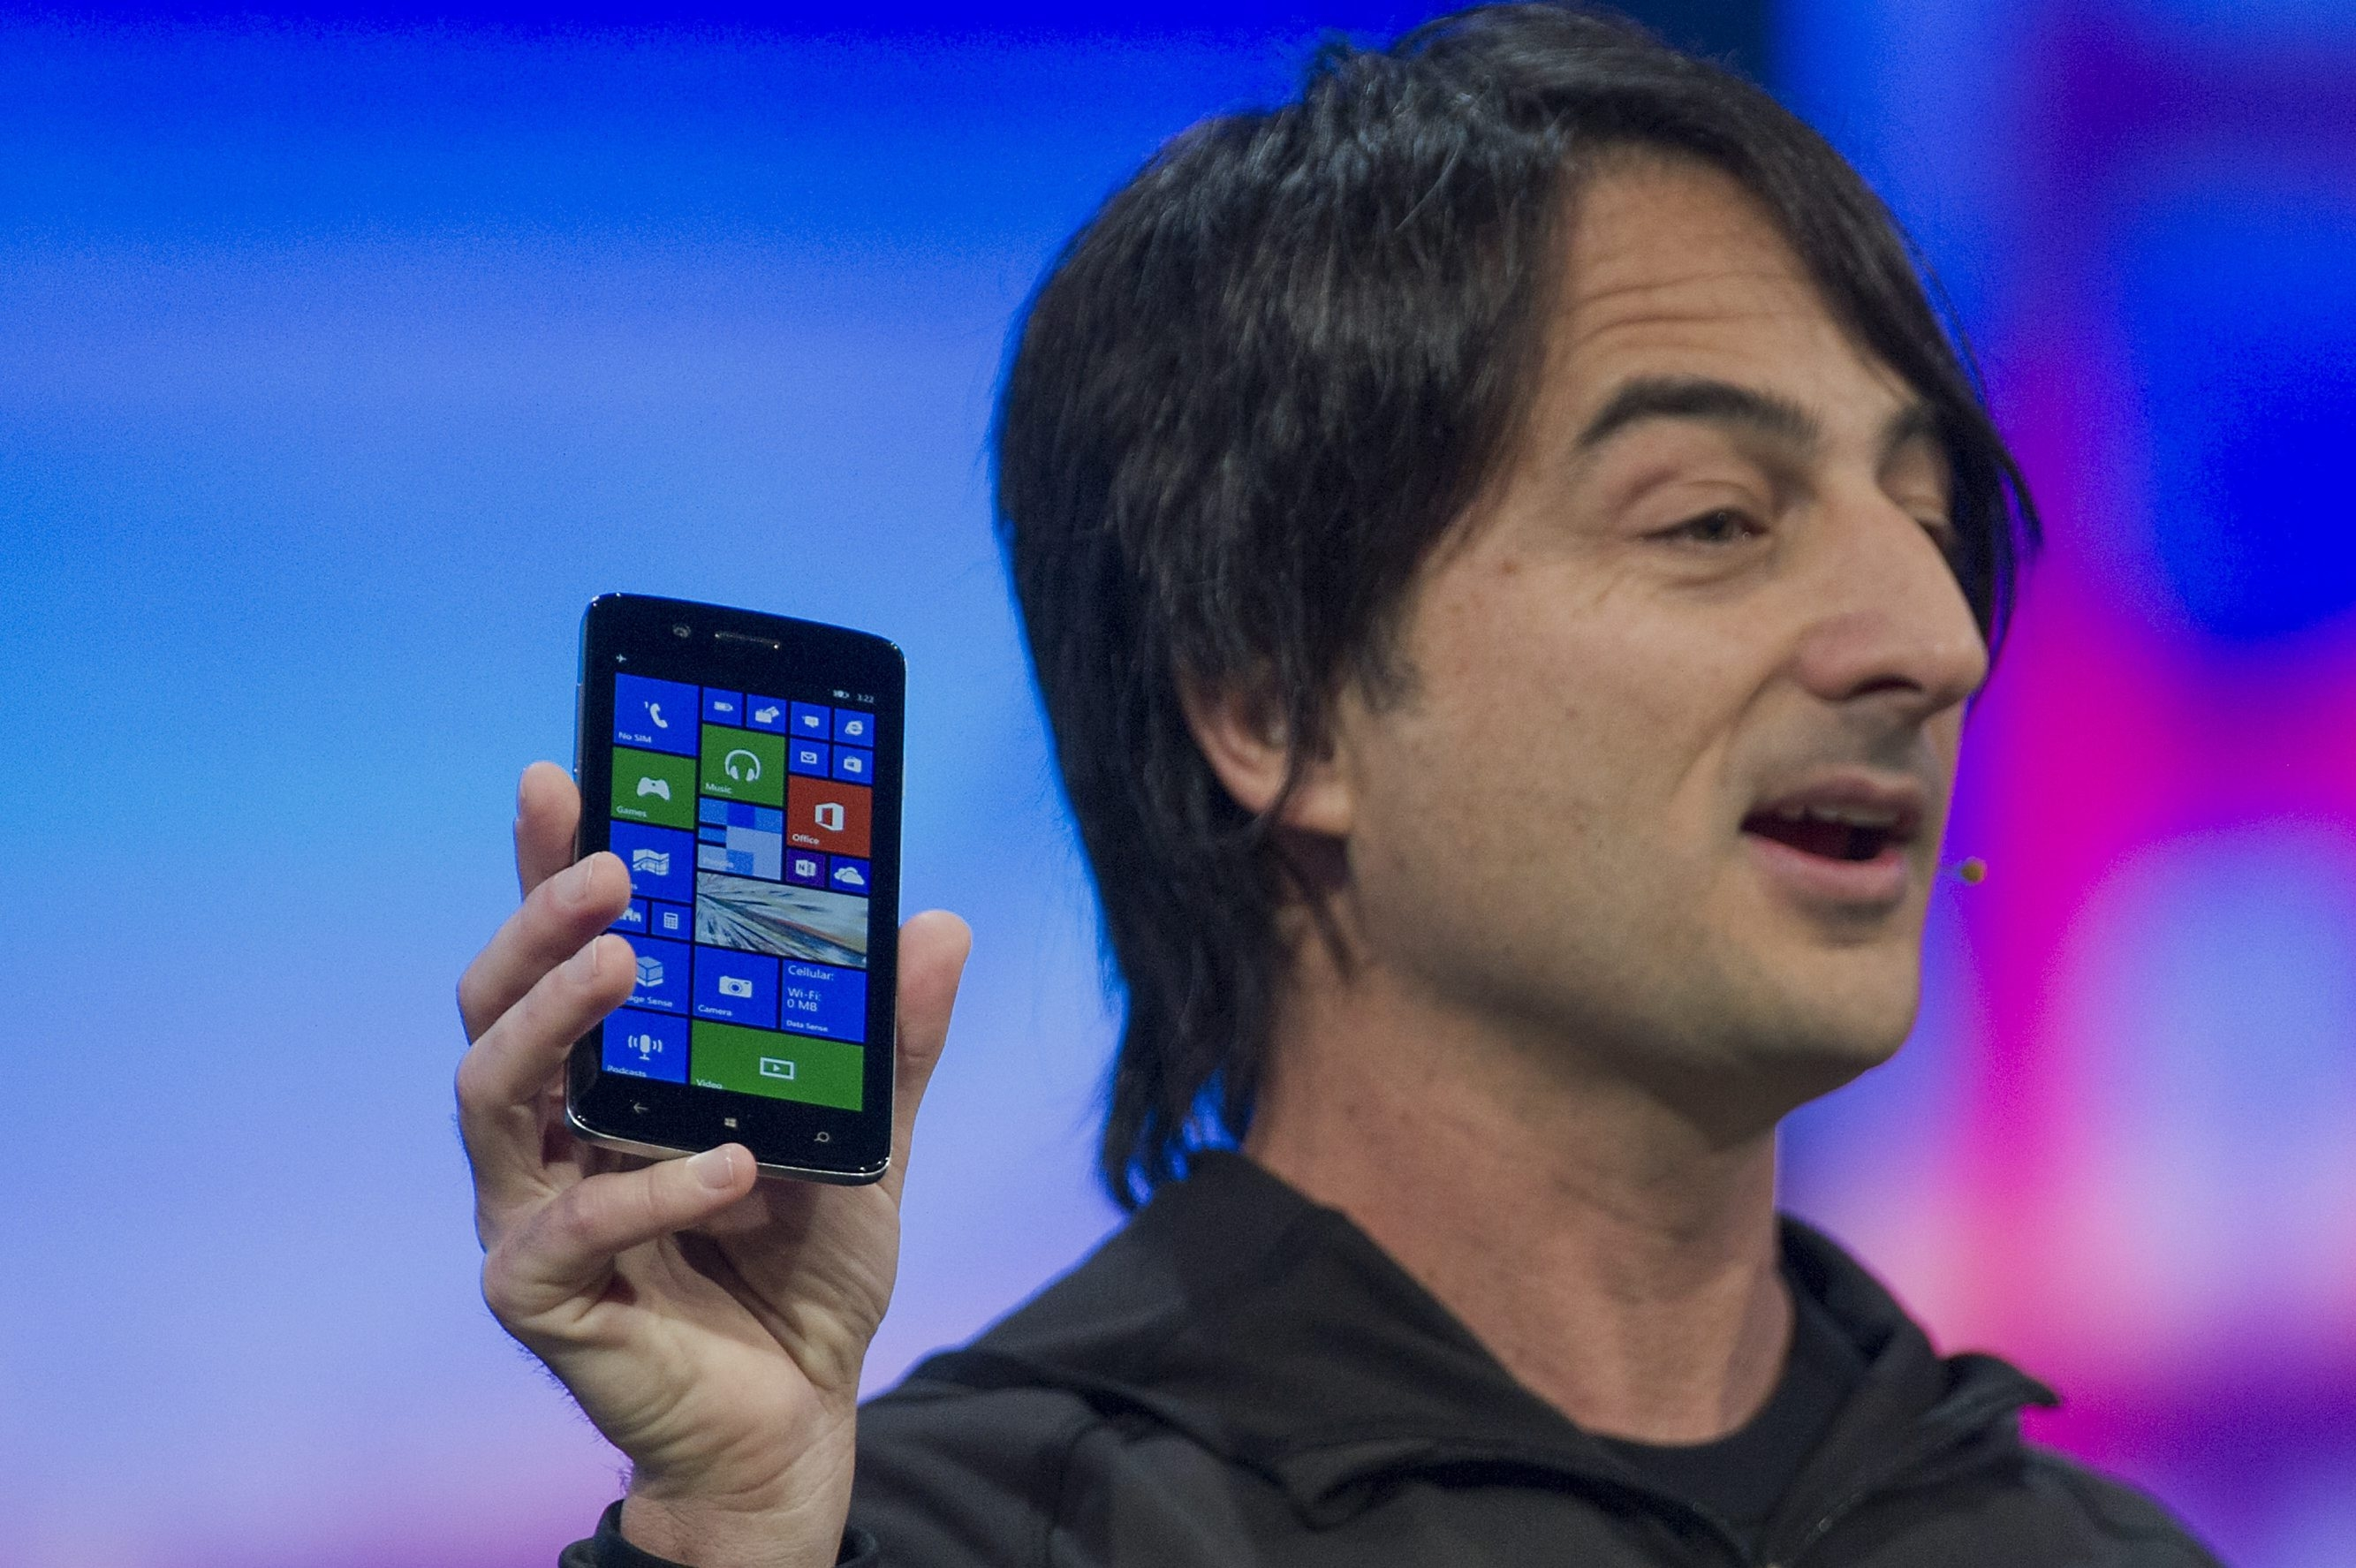 Microsoft Corp. is adding a voice-controlled digital assistant called Cortana to its Windows Phone software. The feature combines aspects of Apple's Siri and Google Now.